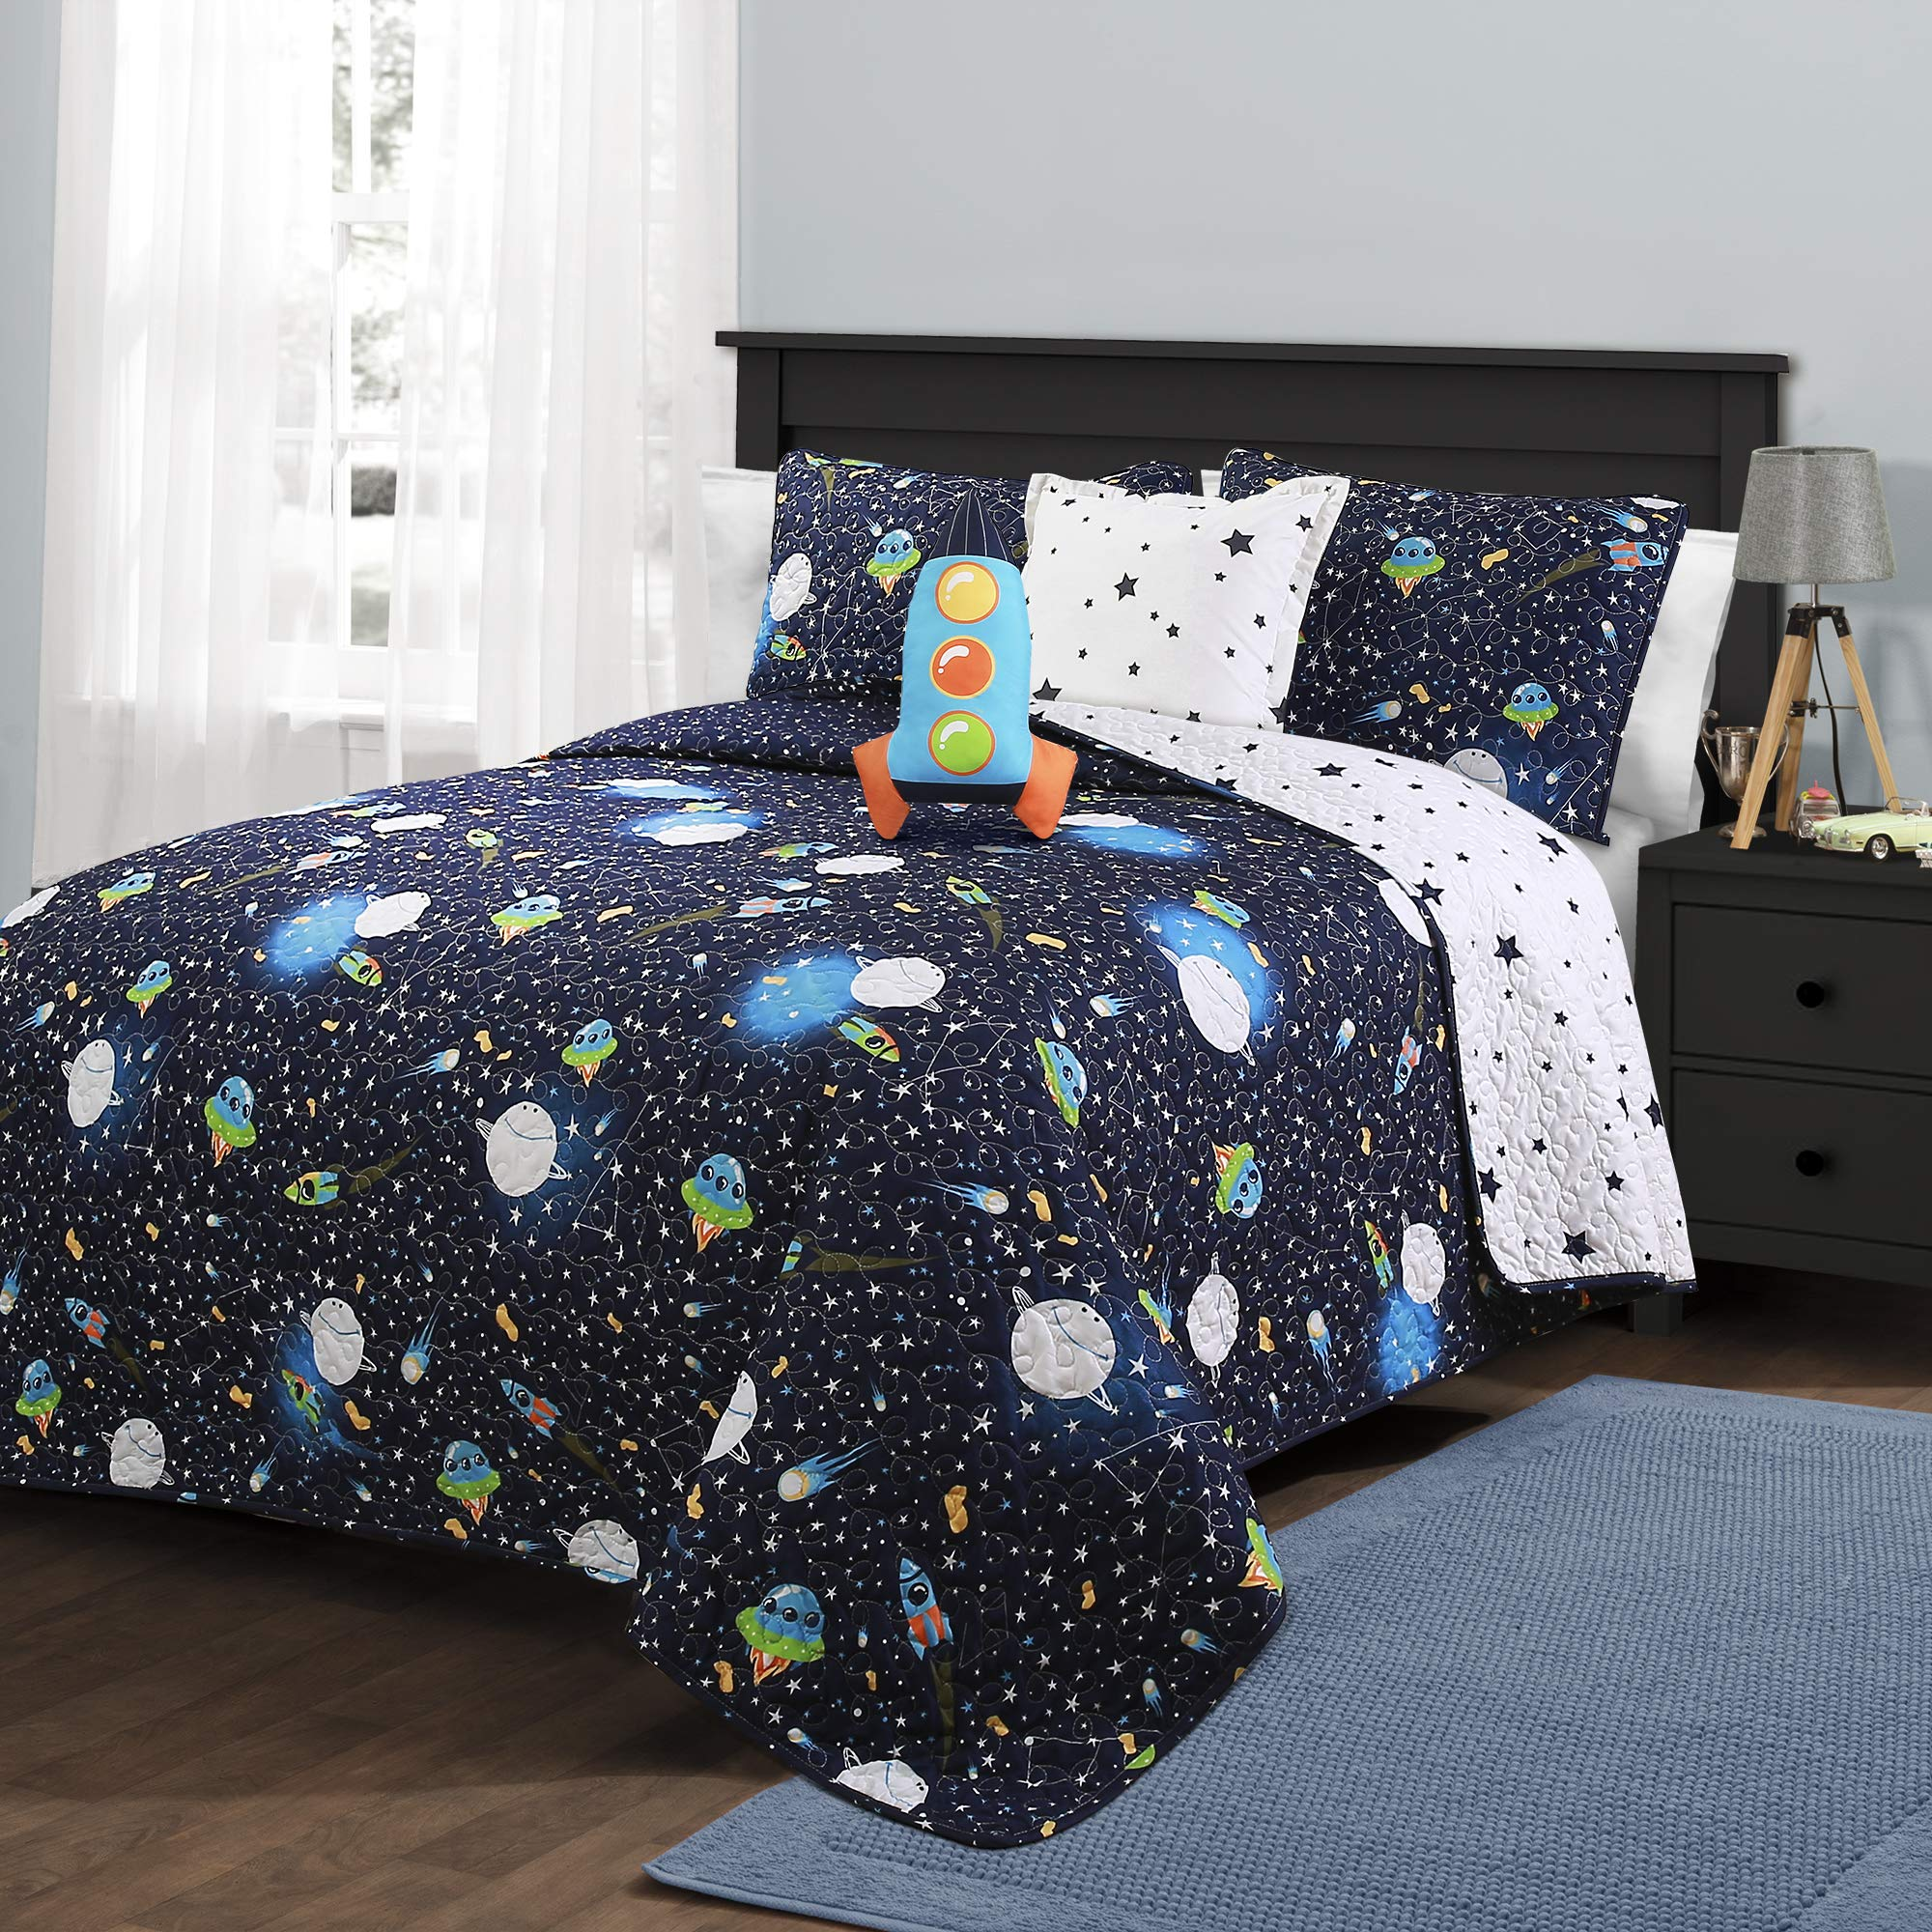 Lush Decor Universe Quilt | Outer Space Stars Galaxy Planet Rocket Reversible 4 Piece Bedding Set for Kids-Full Queen-Navy by Lush Decor